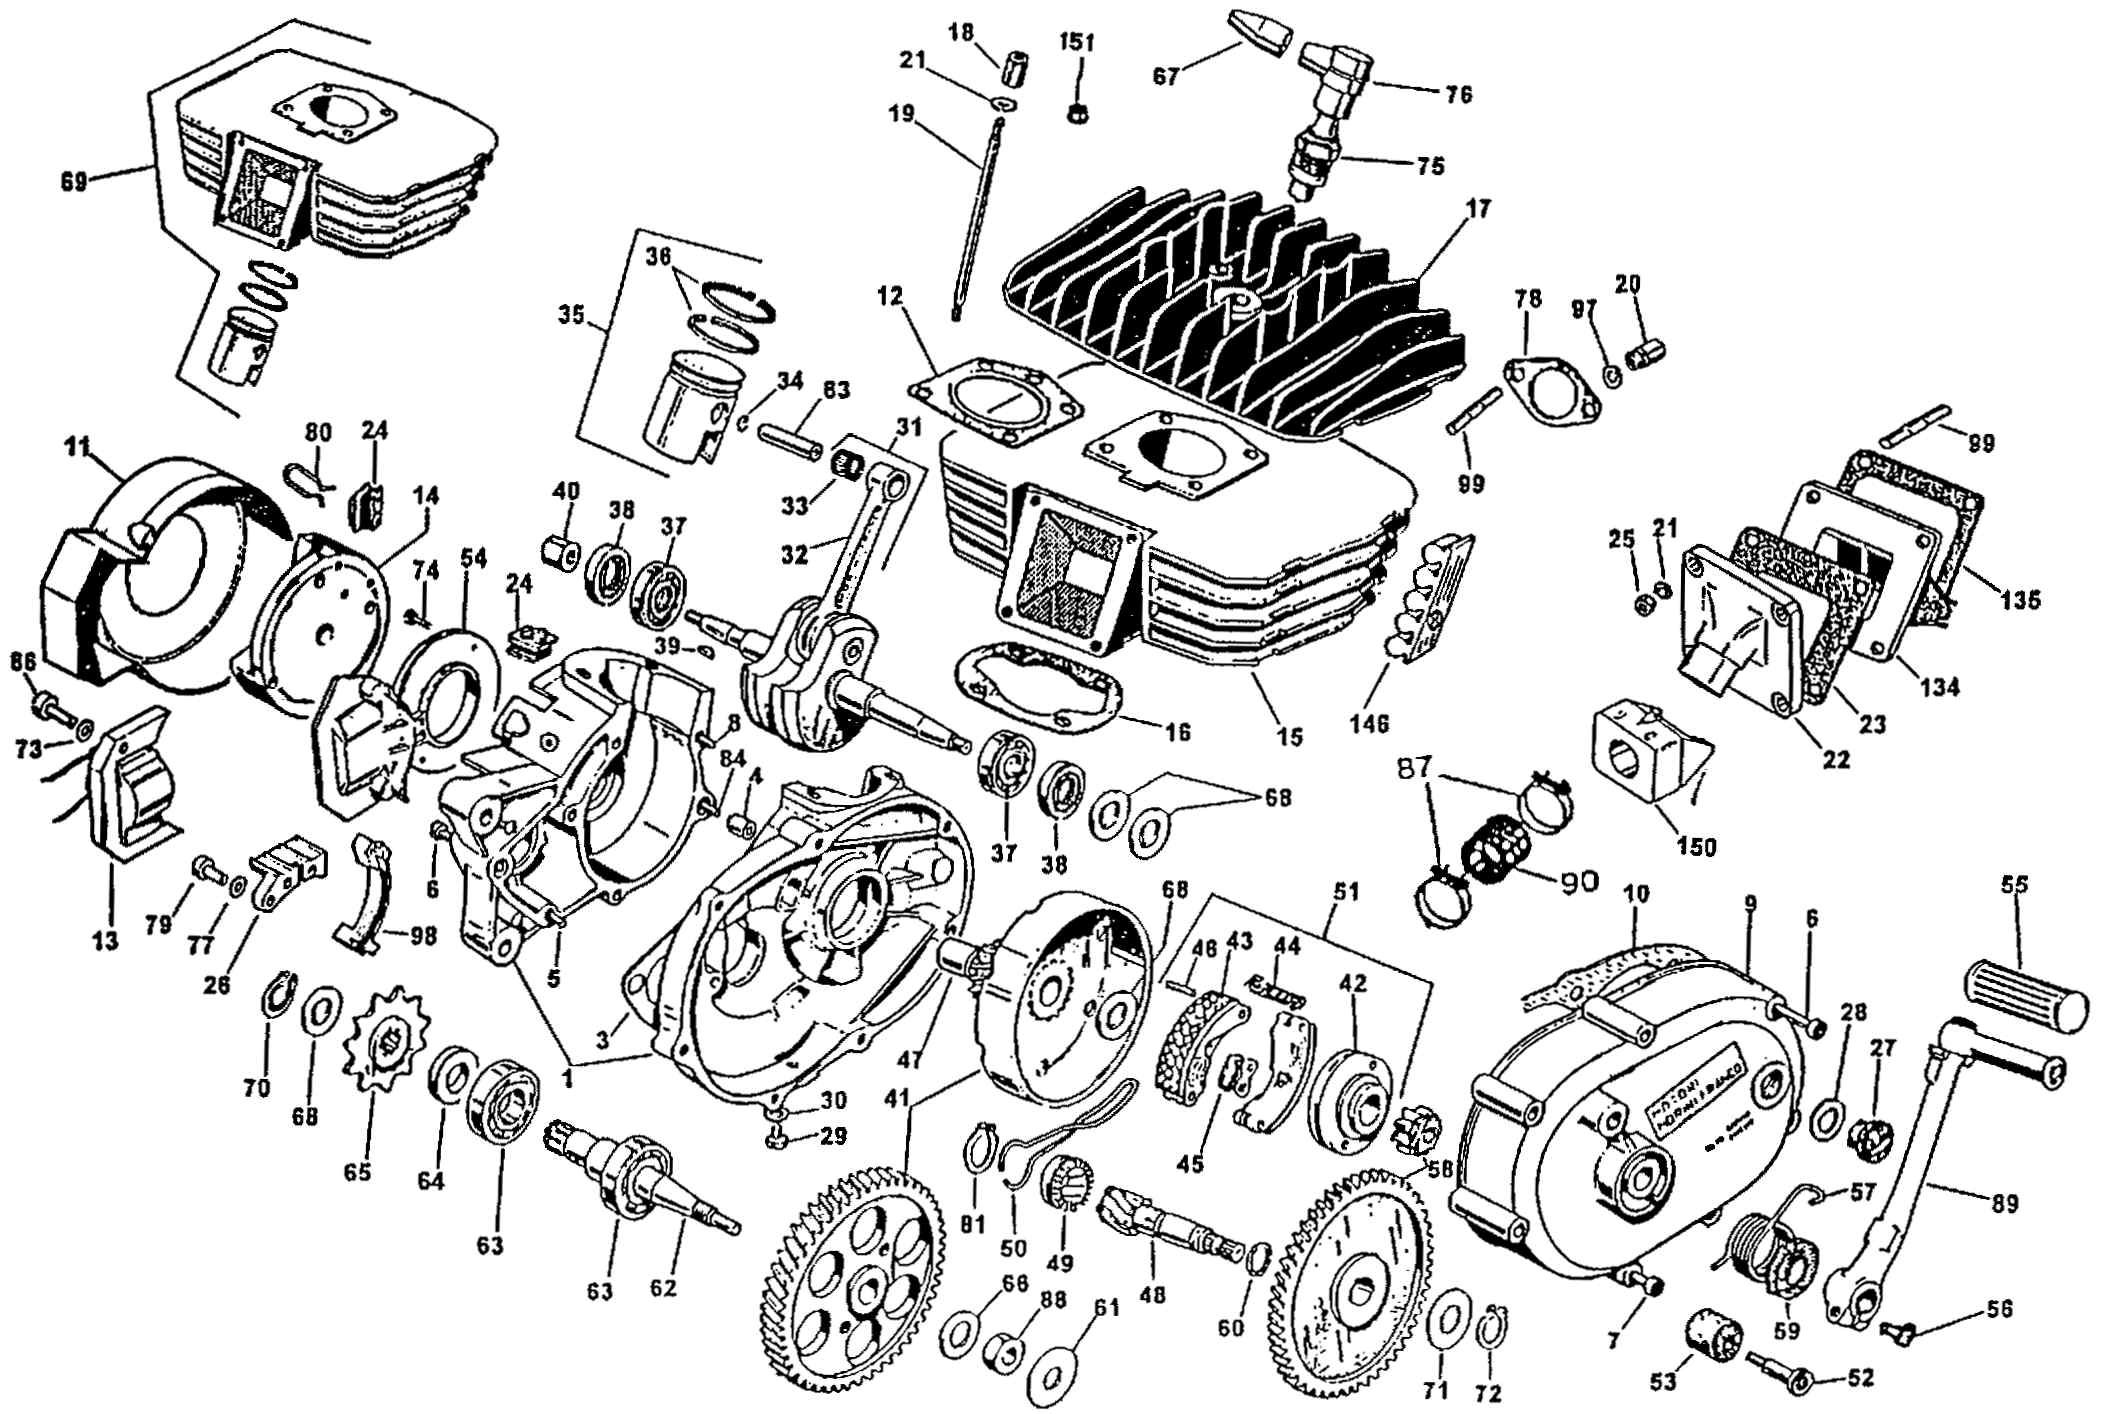 car mechanical drawings technical illustration technical drawings car engine motorcycle engine exploded [ 2102 x 1414 Pixel ]